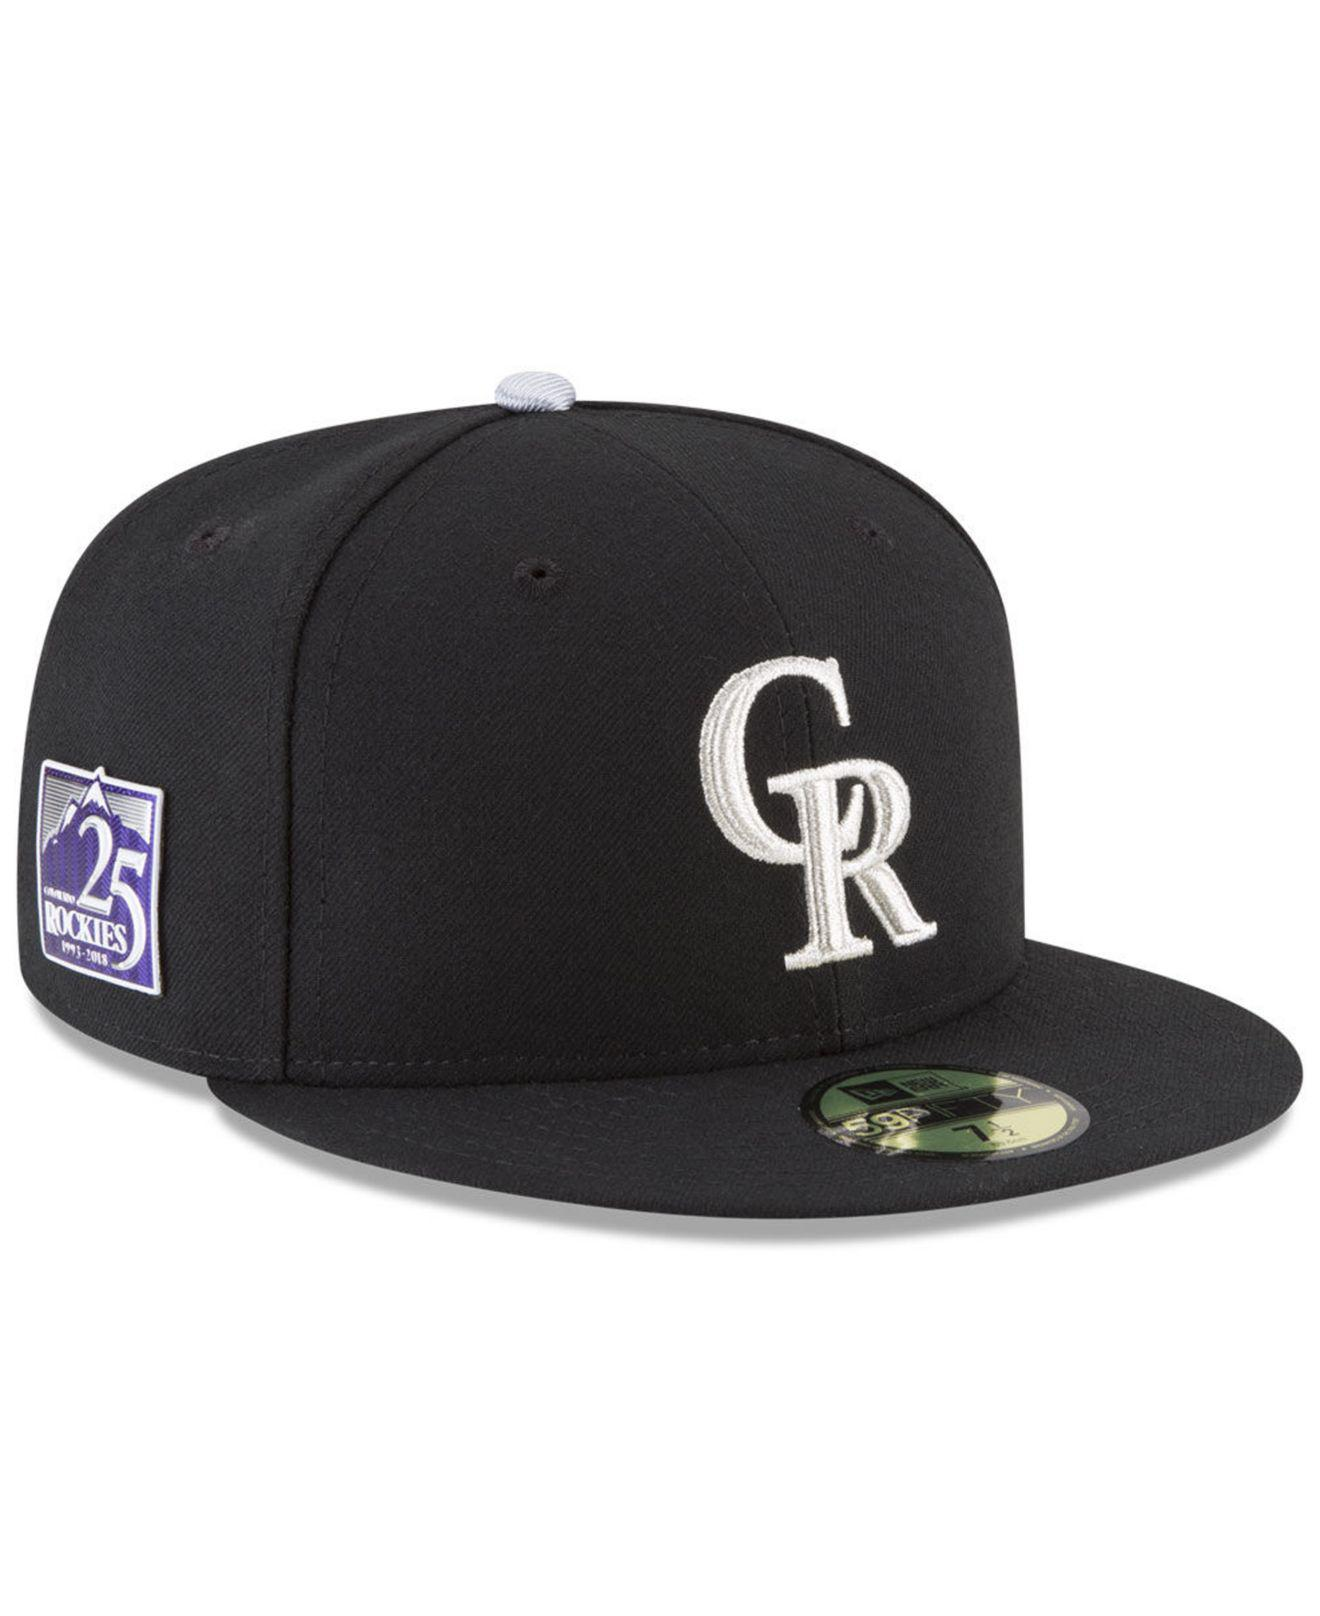 free shipping 5dc13 3af1e KTZ Colorado Rockies Authentic Collection 25th Anniversary 59fifty ...